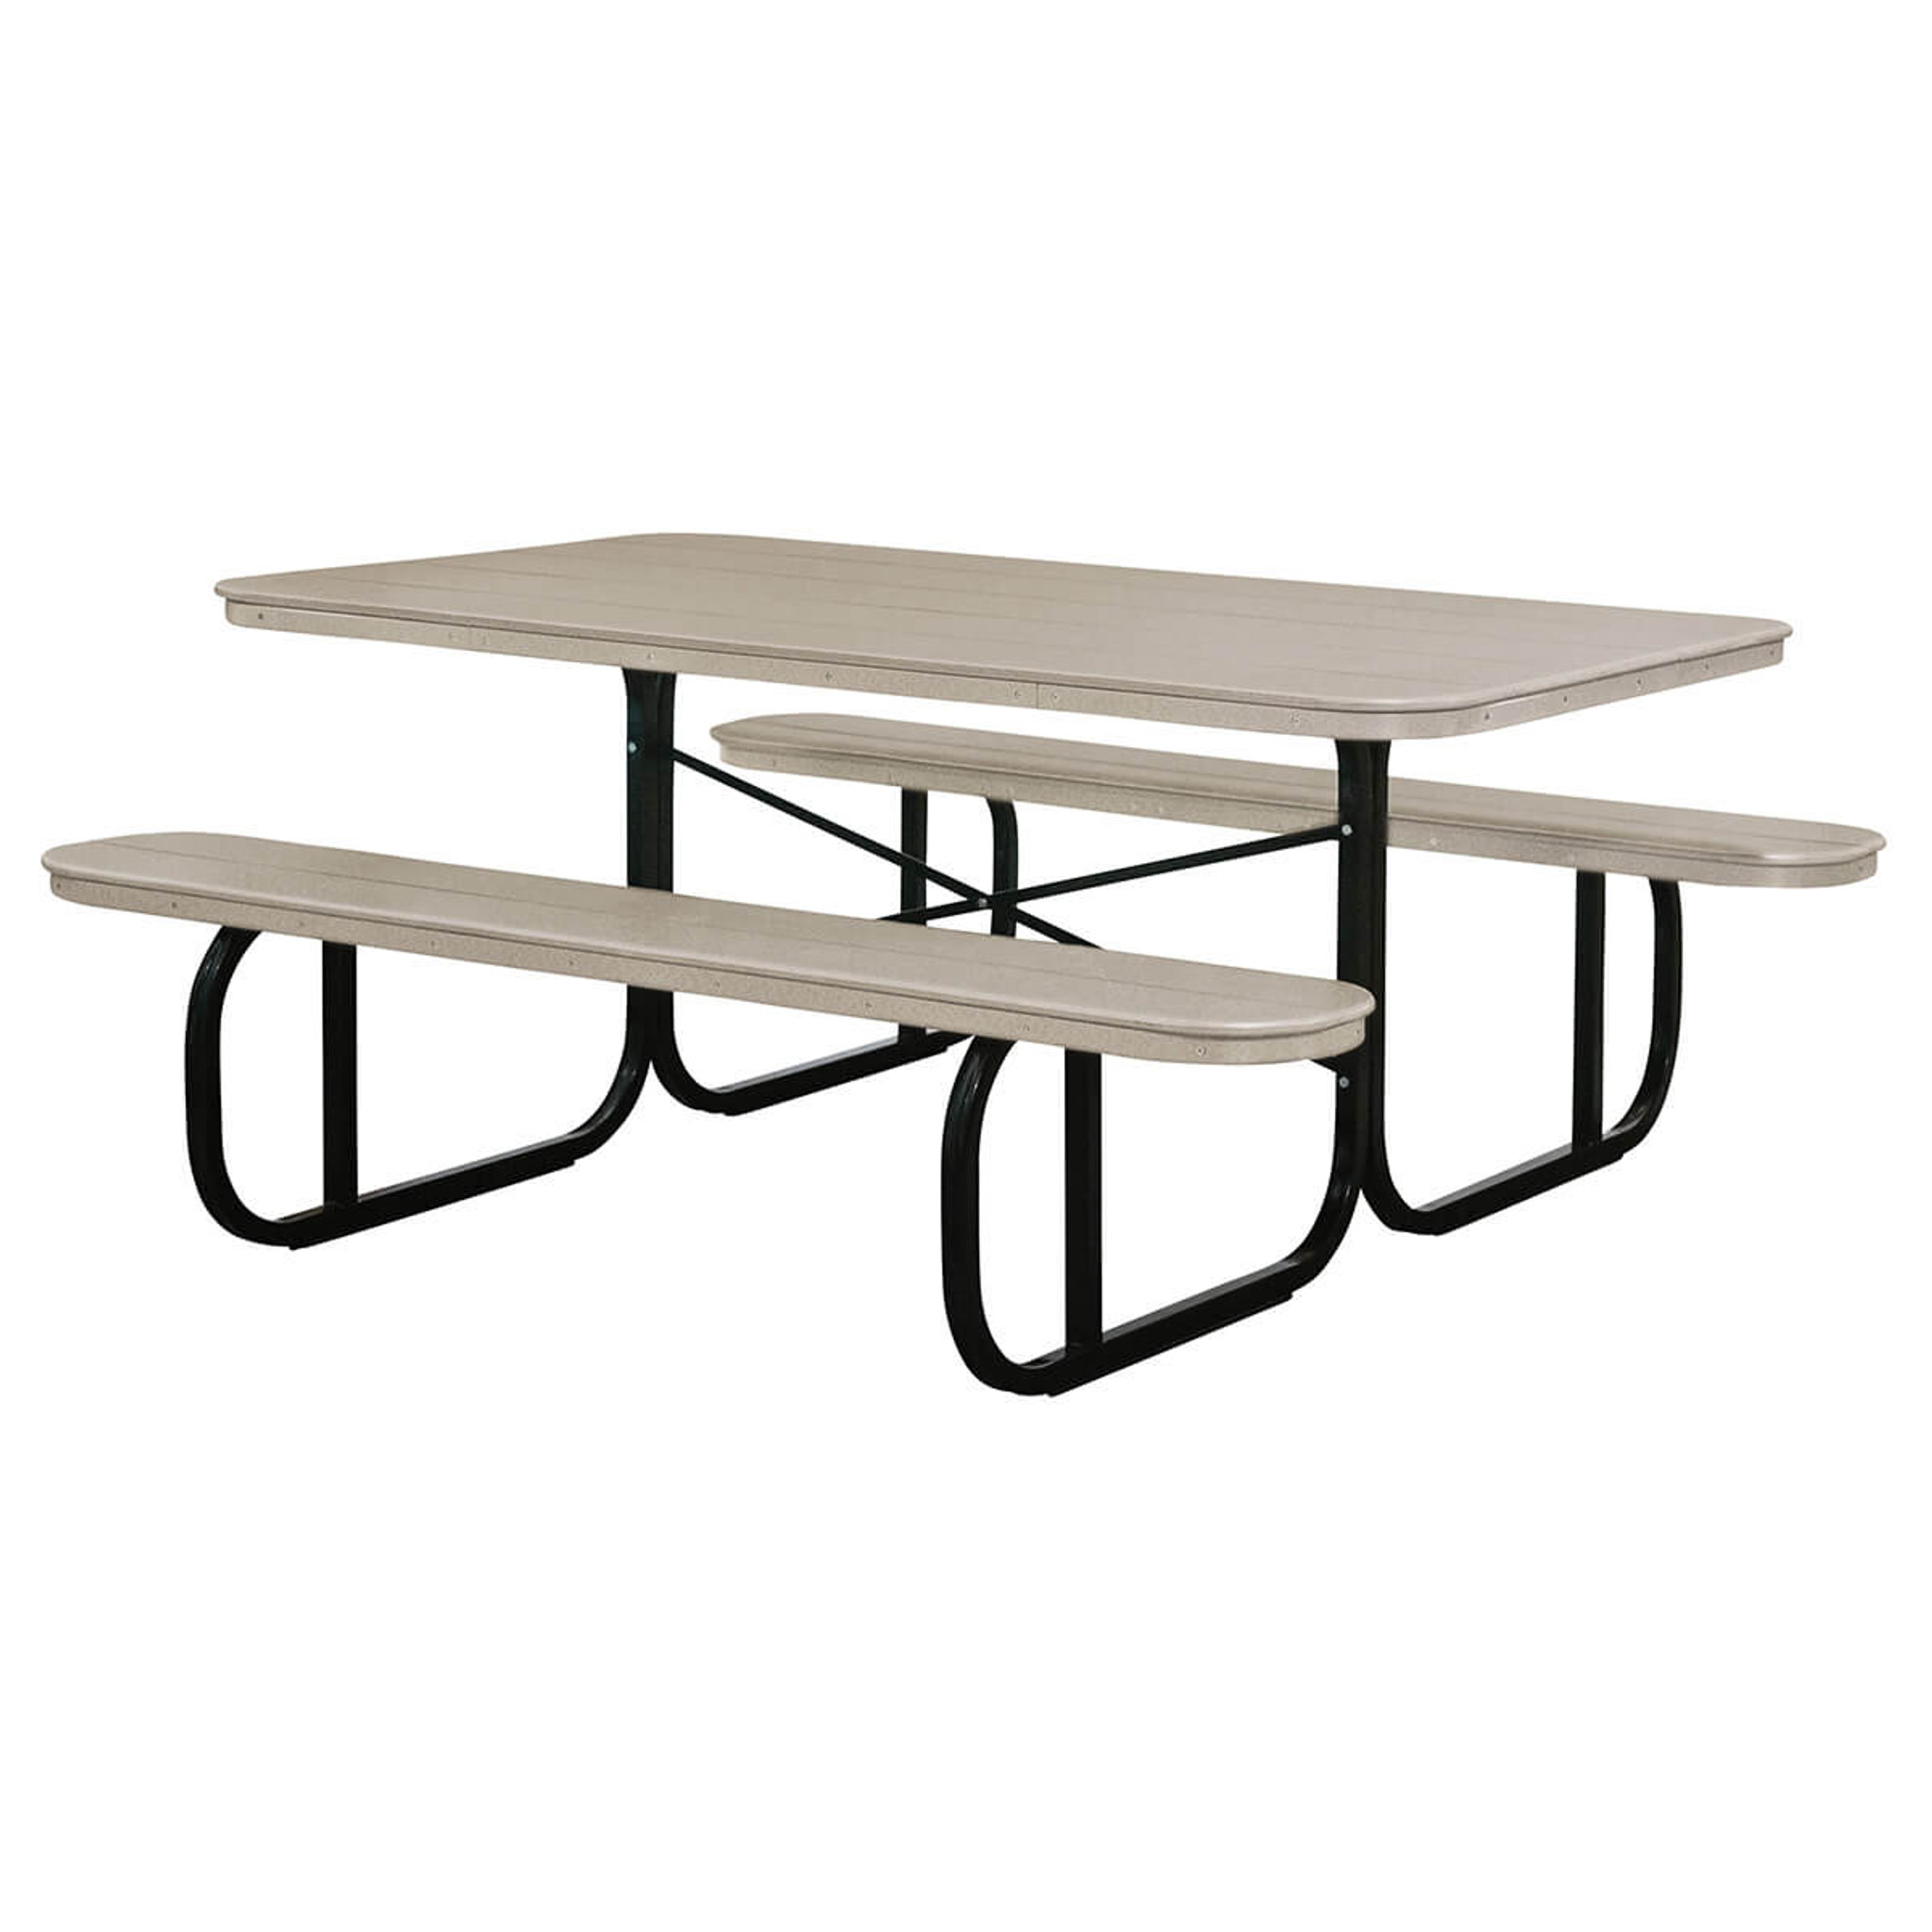 Picnic Table Poly With Metal Base